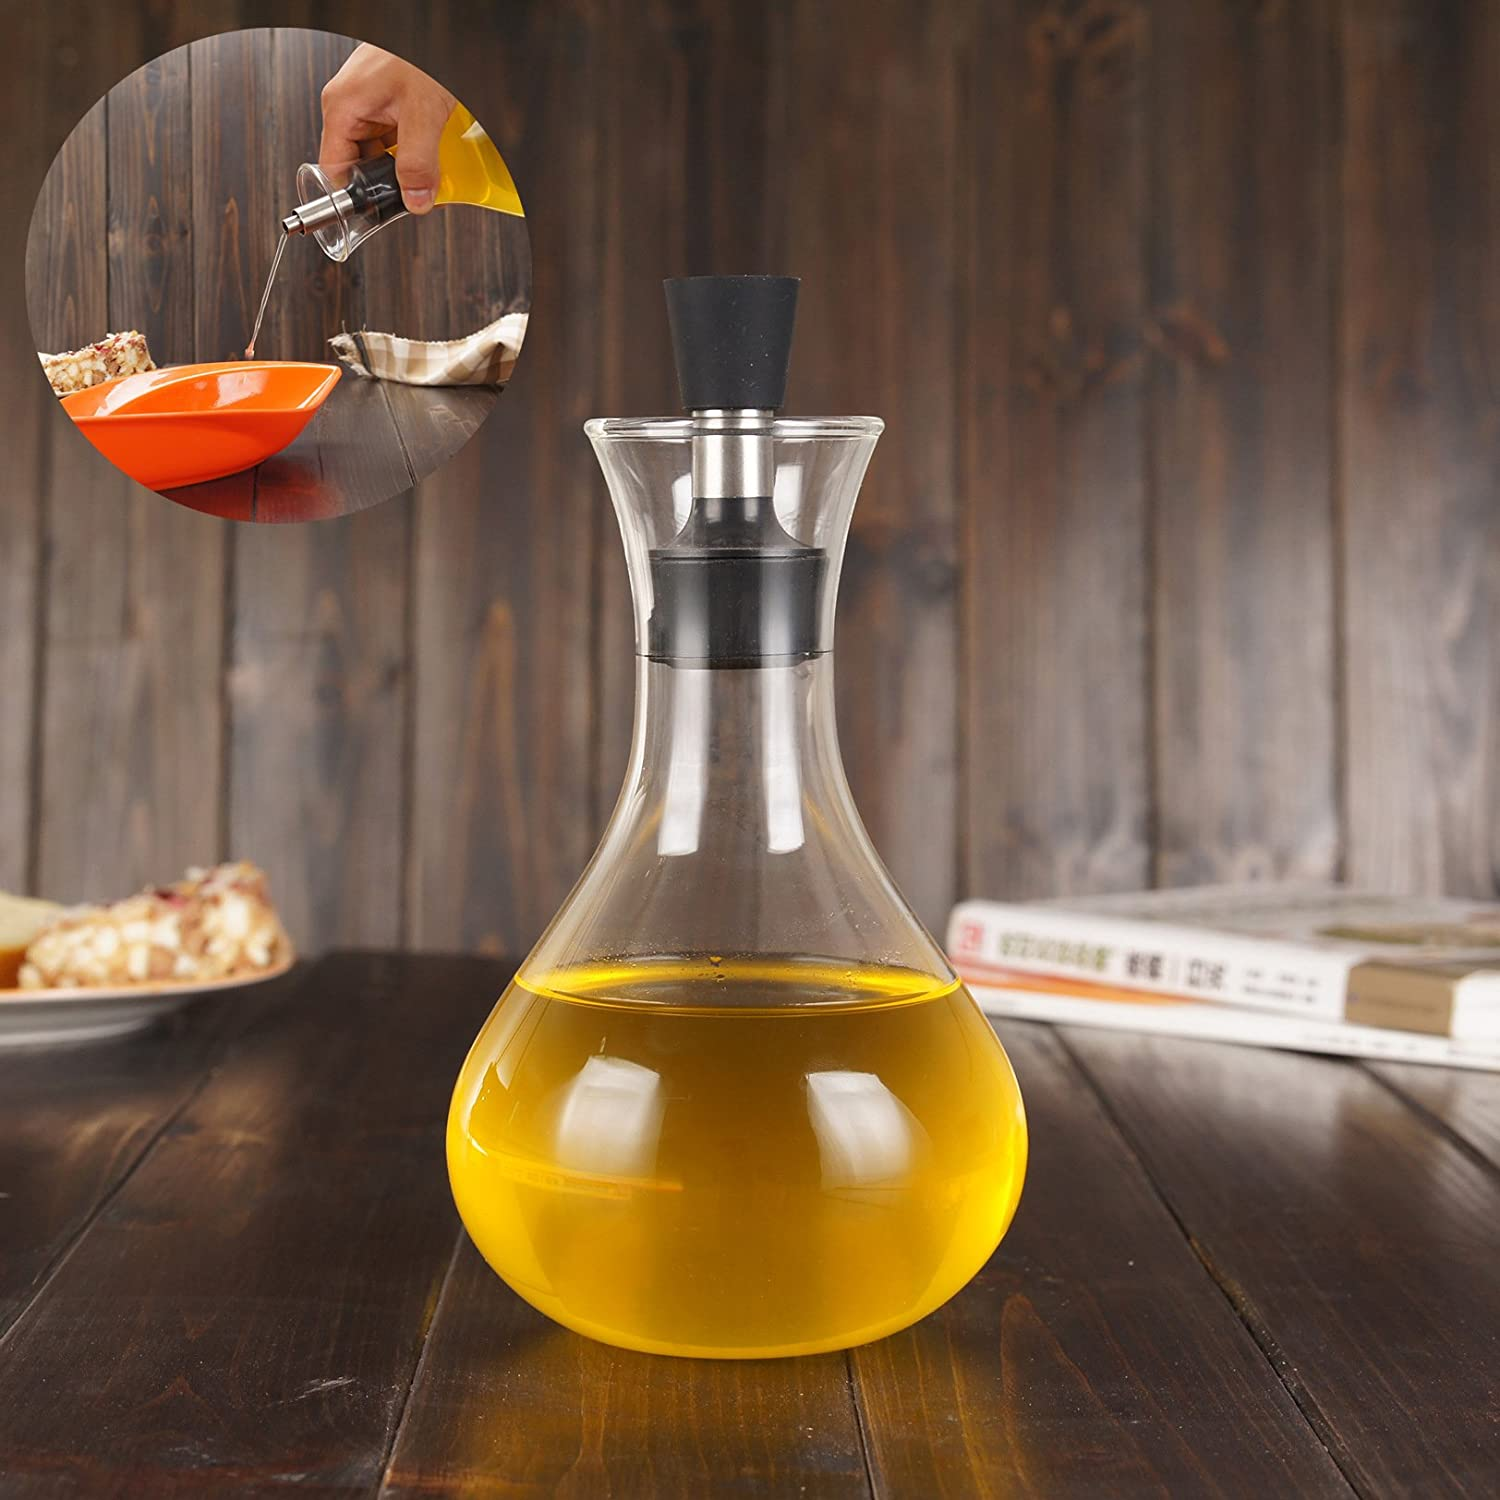 Simonshop 500ml Leak-Proof Oil Bottle Soy Sauce Container Vinegar Oil Cruet Storage Dispenser Cooking Tool (Style A) TIANJIA080